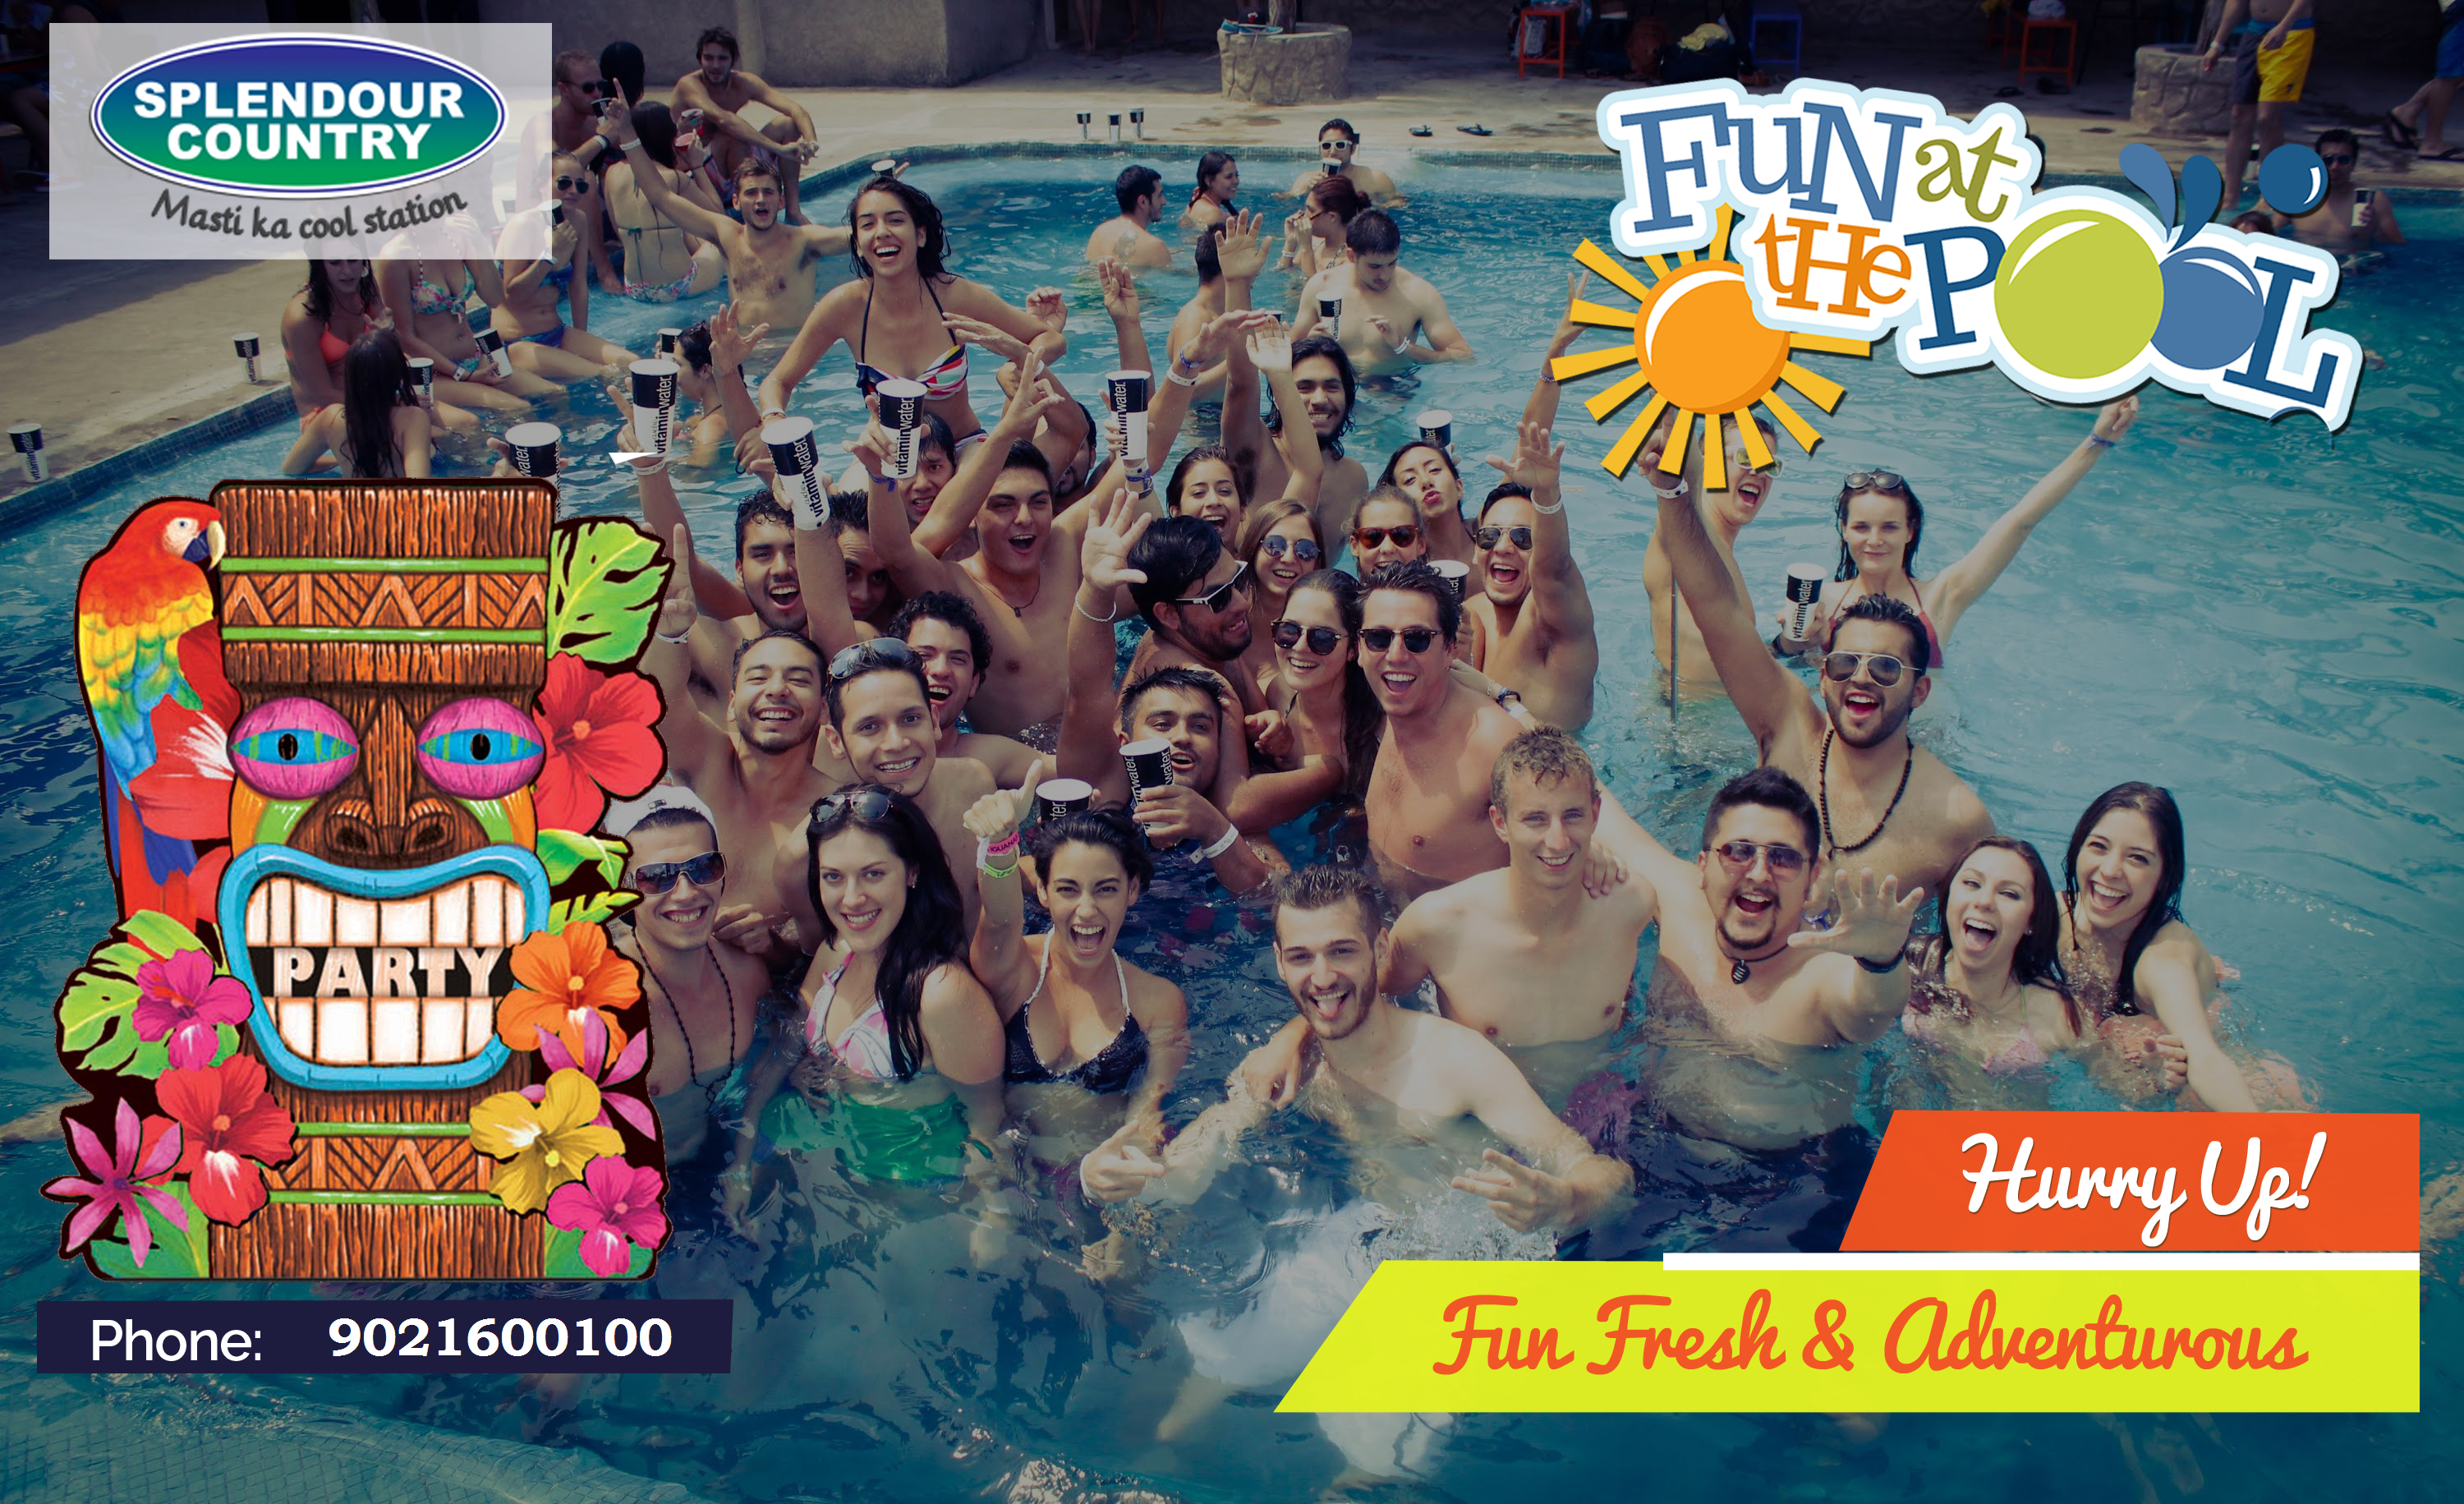 Pune events- Hawaiian themed Pool Party at one of the best one day picnic spot- Splendor Country